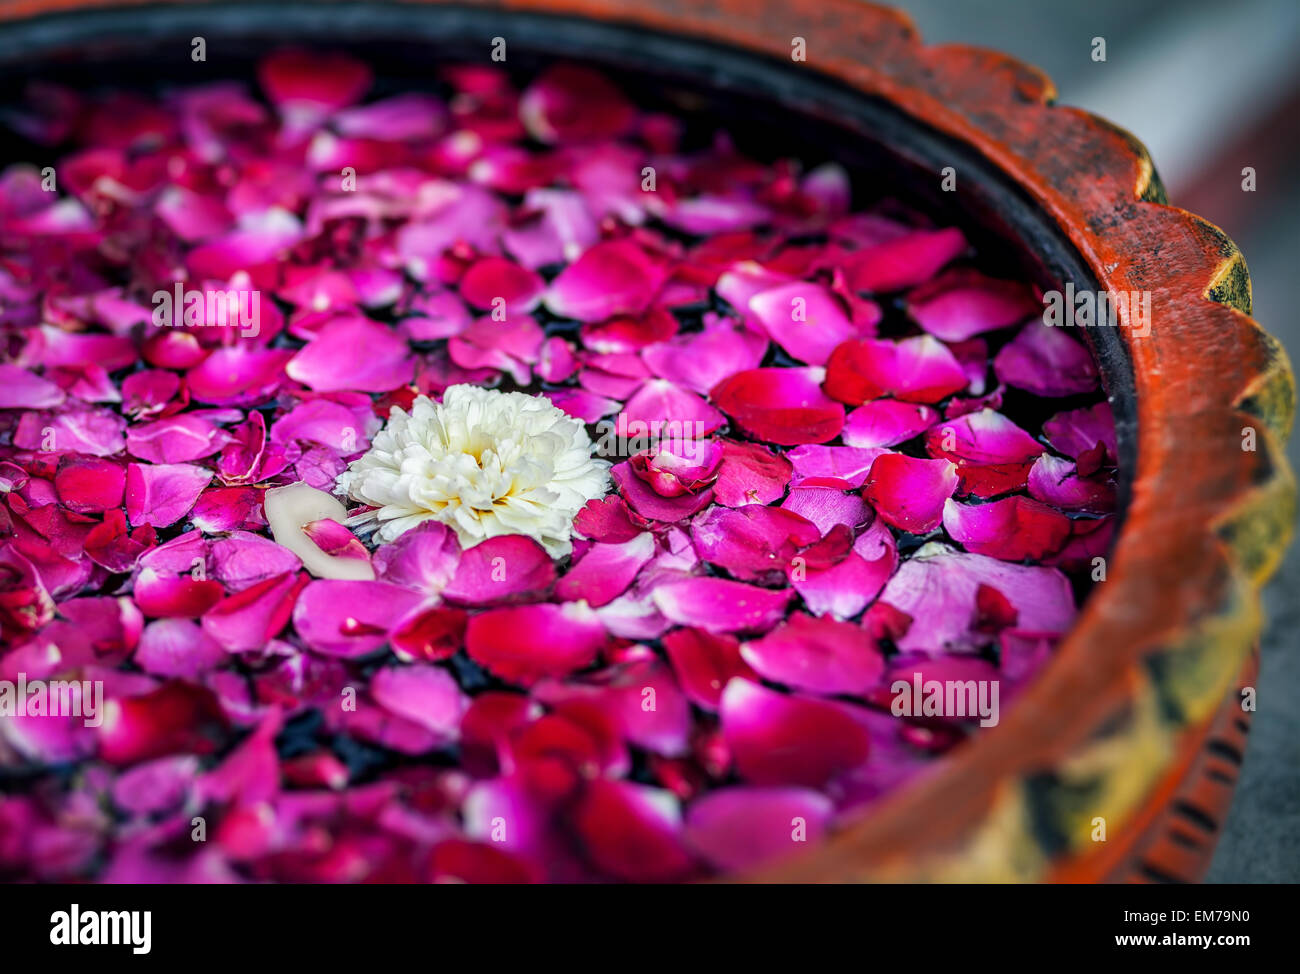 White flower with red rose petals in the bowl in SPA salon - Stock Image